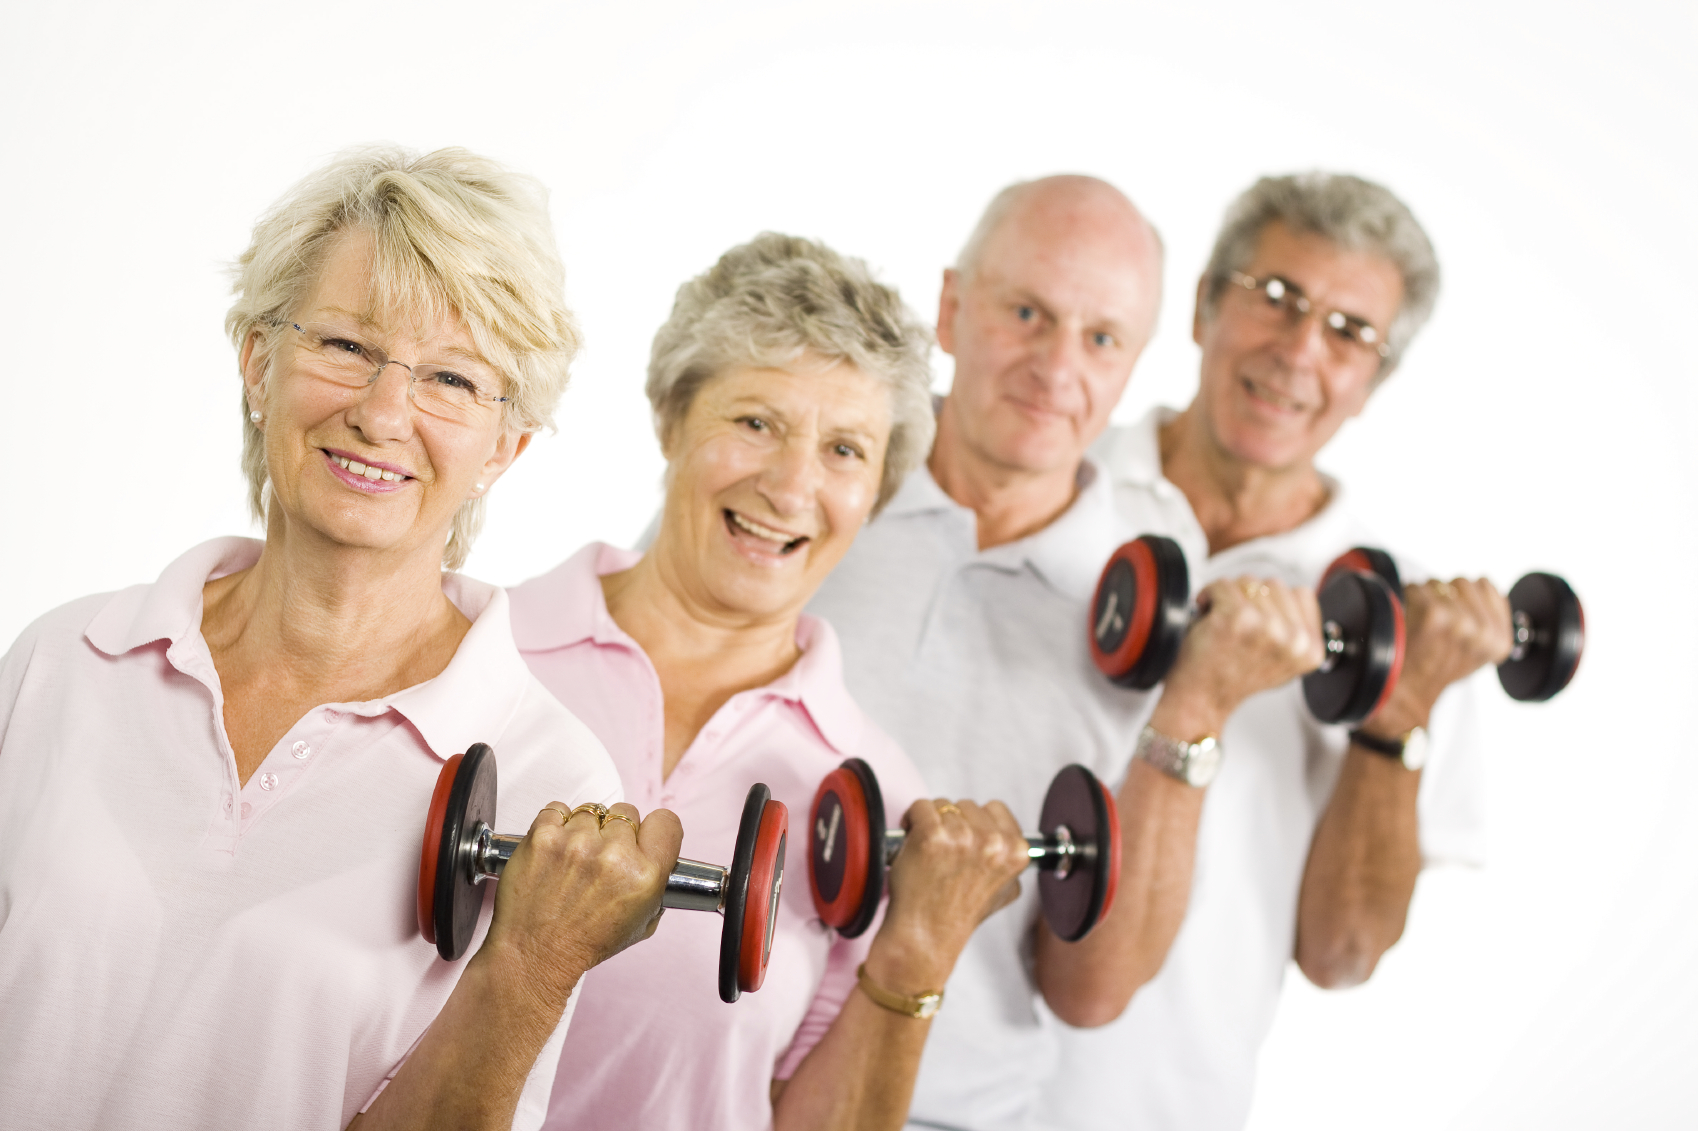 forecast exercise your jun in you moves for can exercises hero seniors diabetes chair do